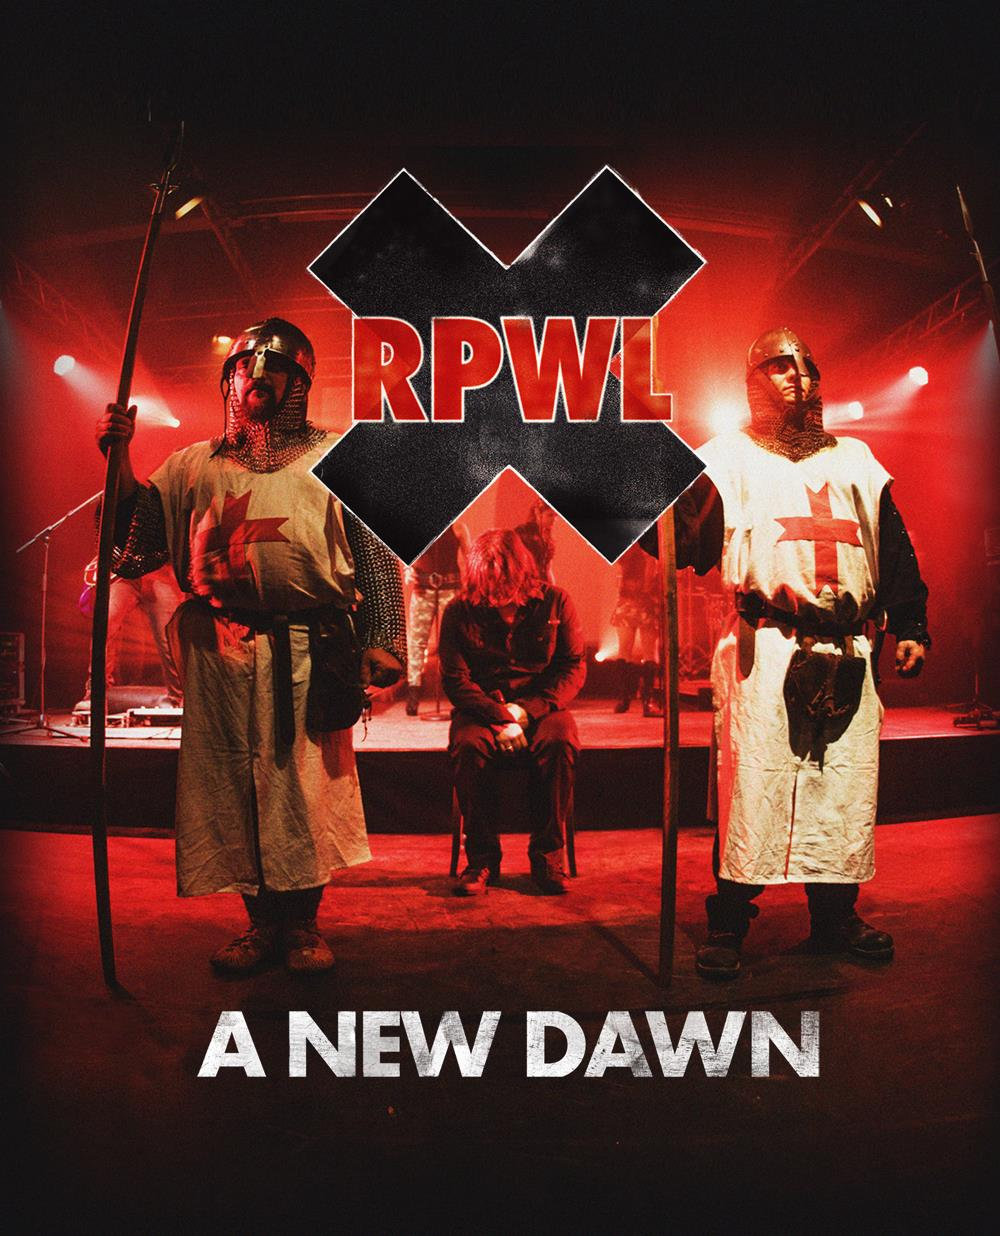 A New Dawn by RPWL album cover